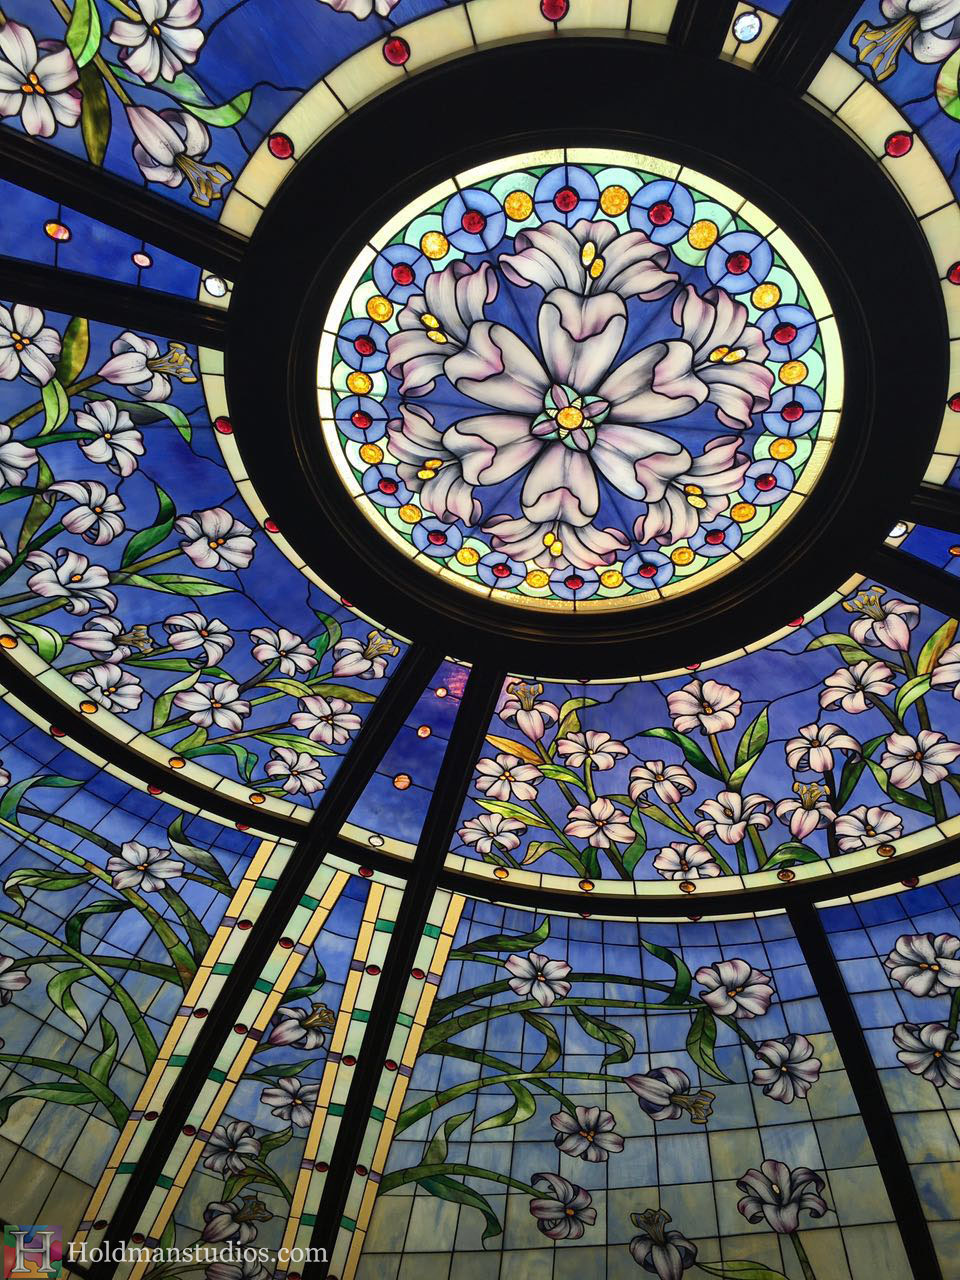 Holdman-Studios-Stained-Glass-Paris-LDS-Temple-Martagon-Lily-Flowers-Sun-Moon-Stars-Grand-Skylight-Window-Crop.jpg